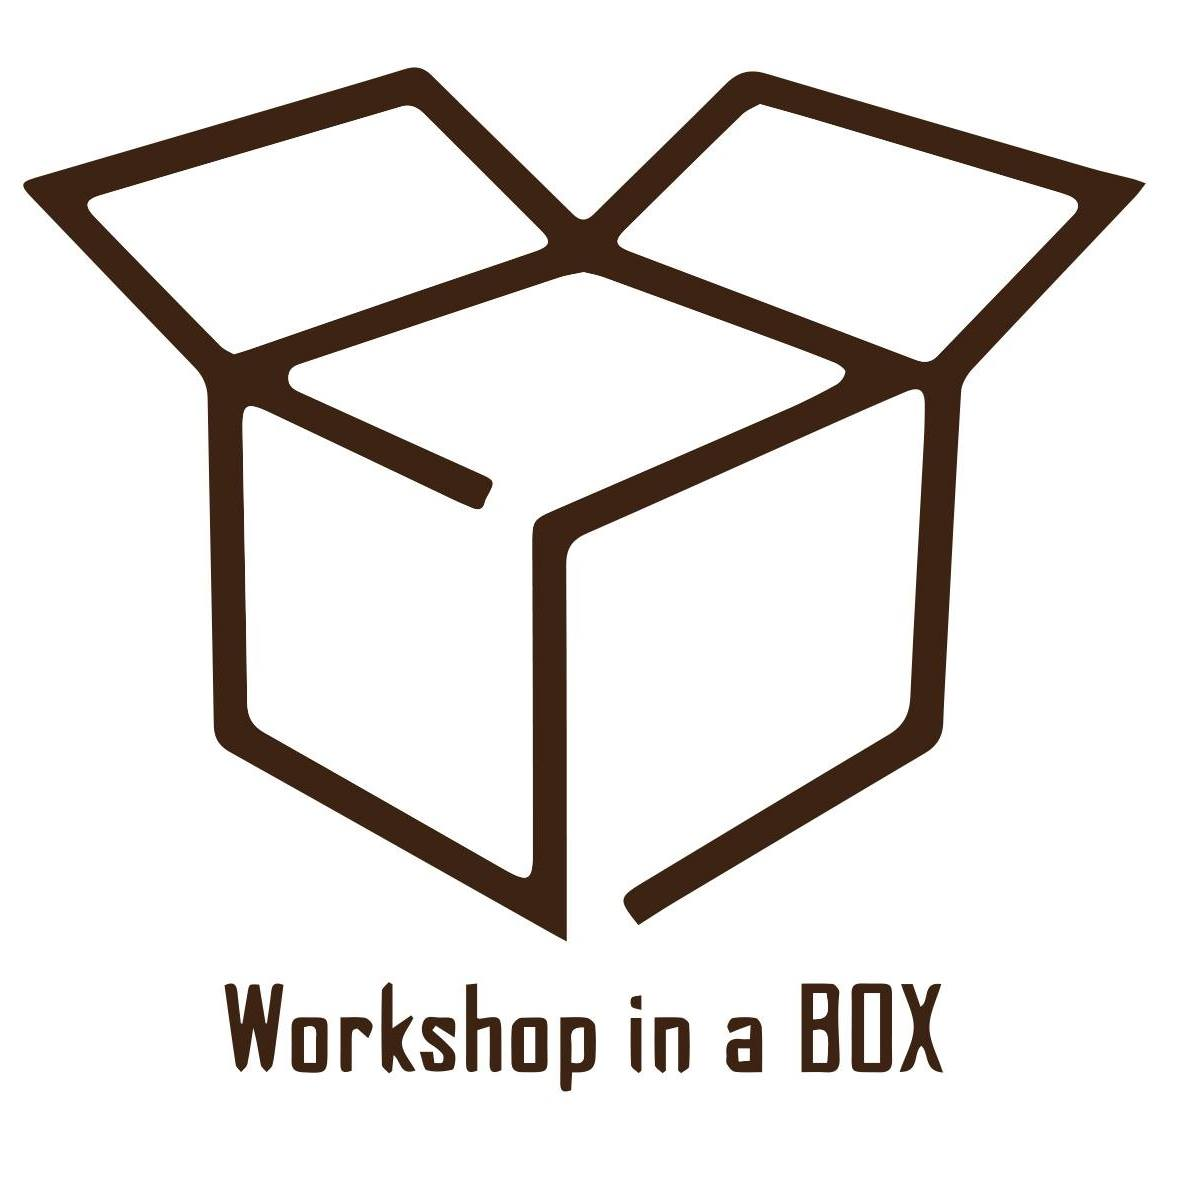 Workshop in a box